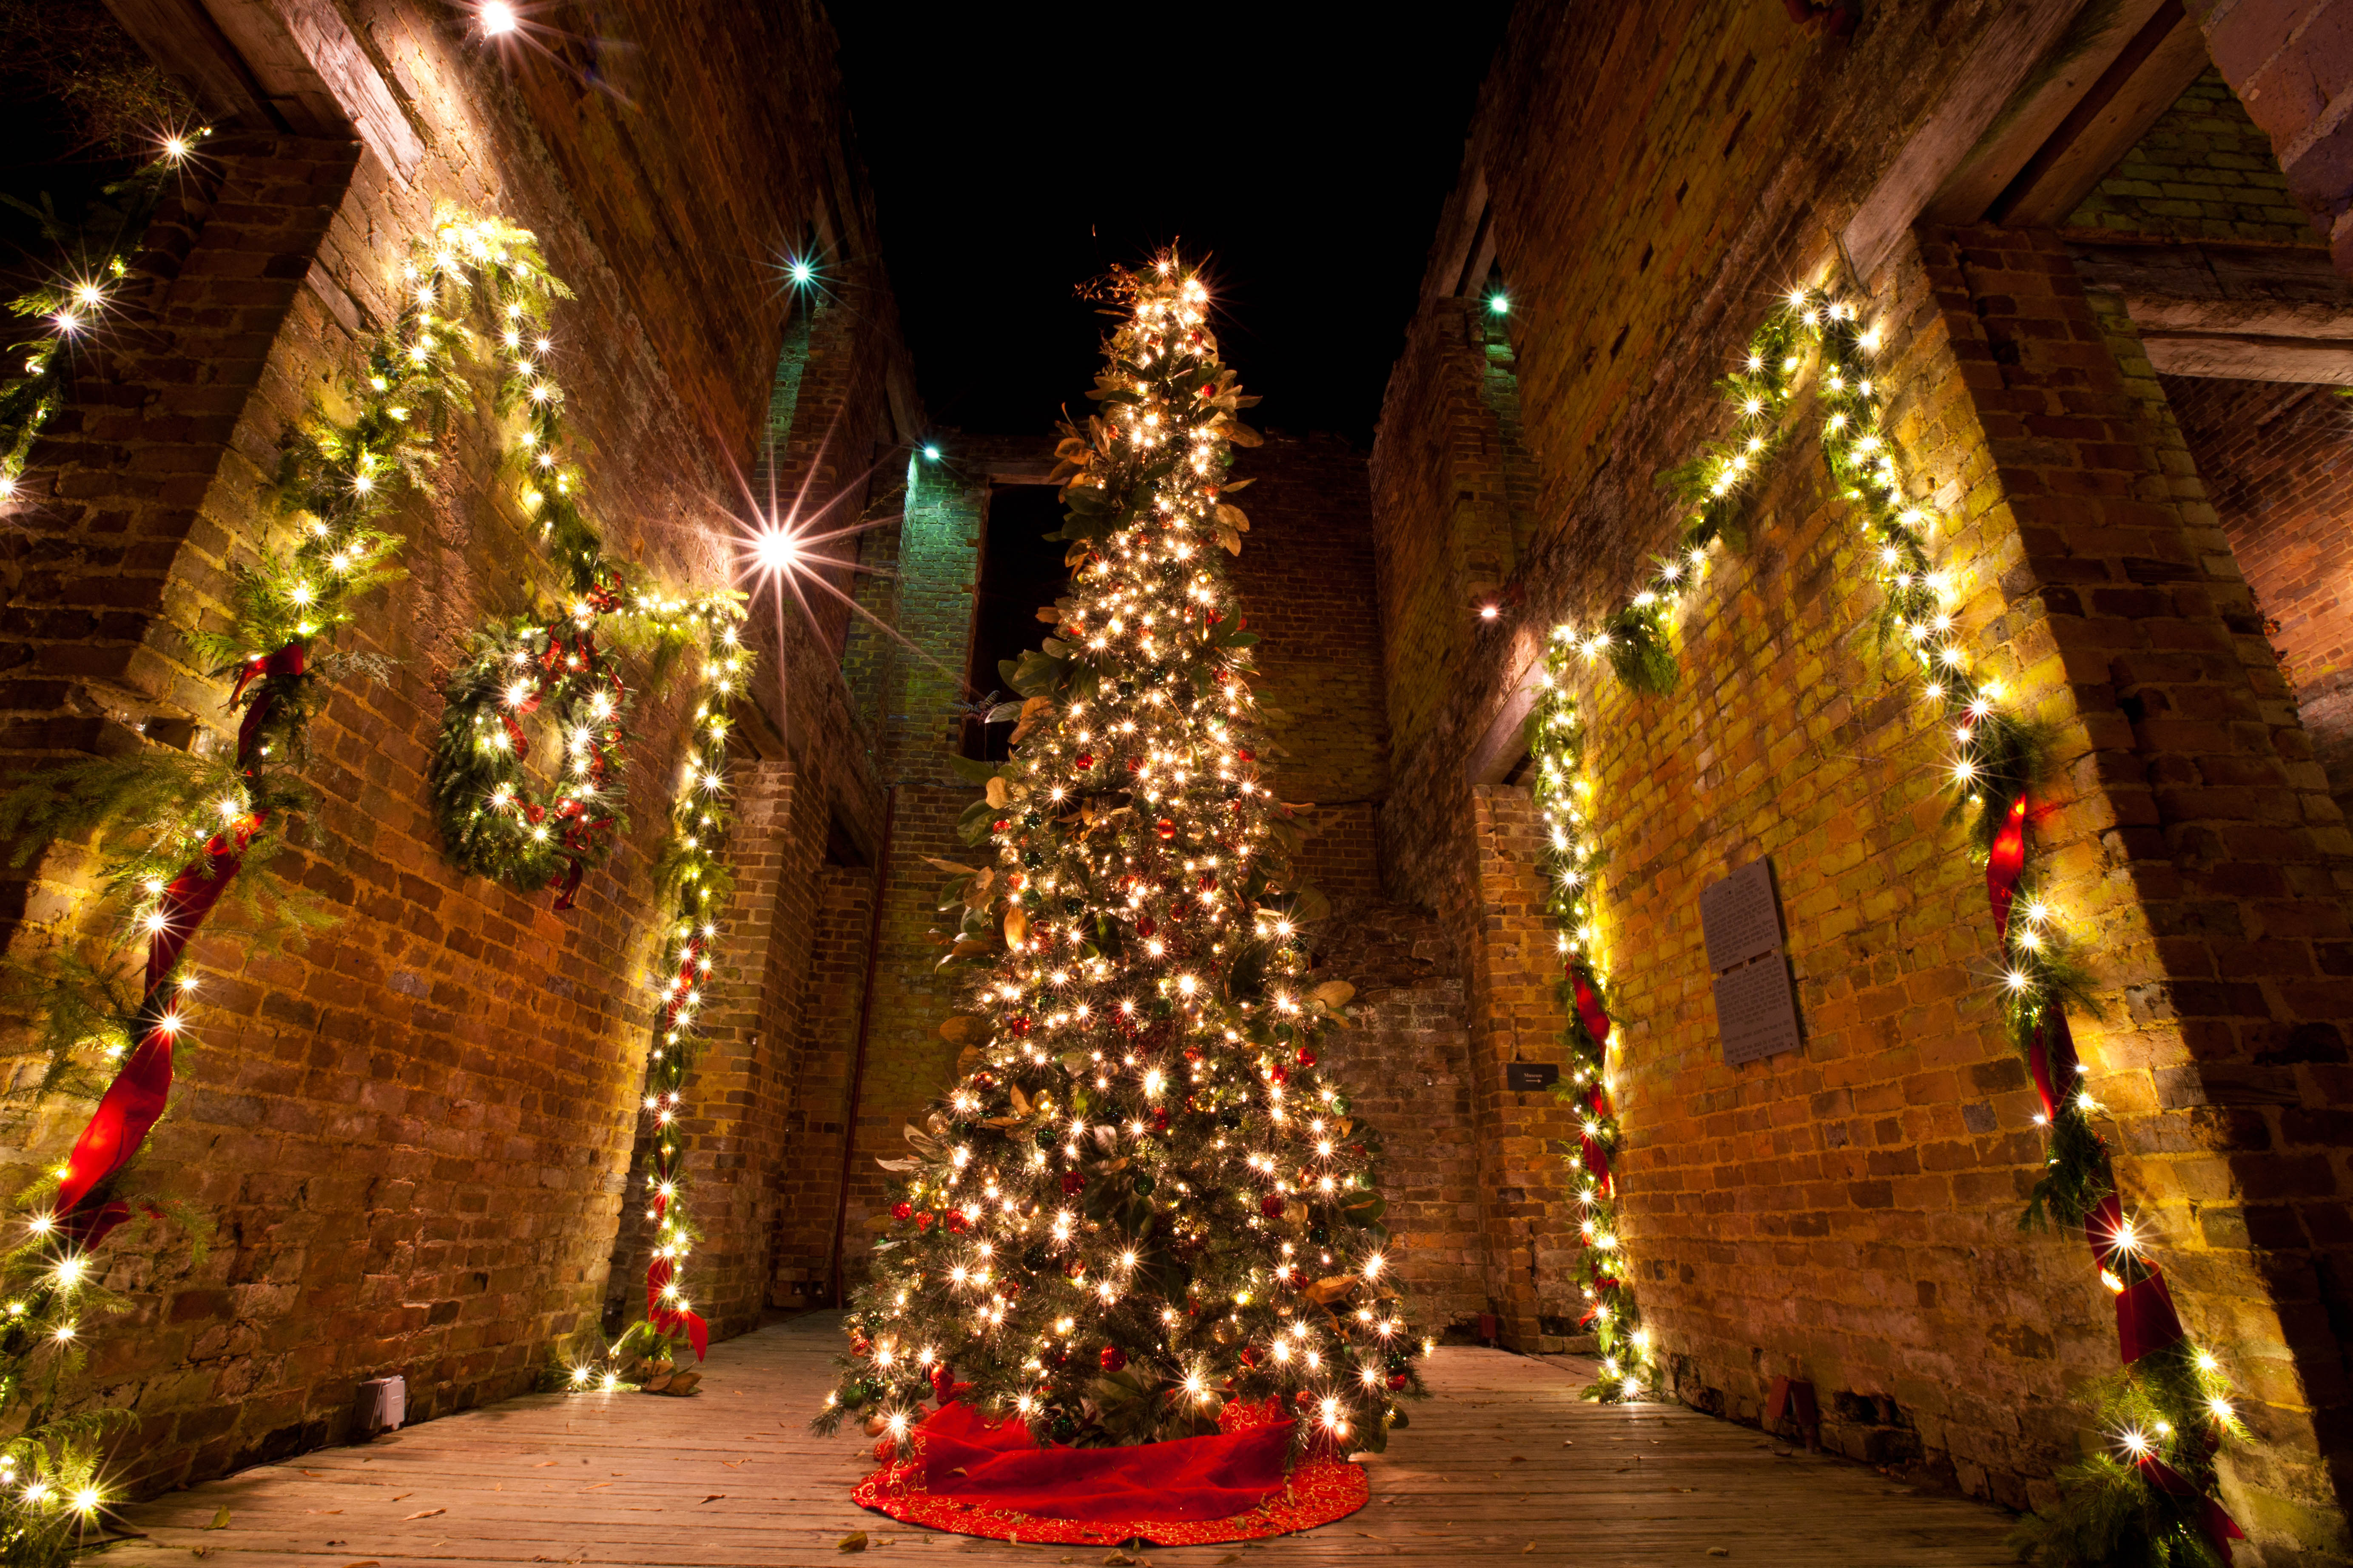 Light Up the Holidays at Barnsley Resort for a Festive